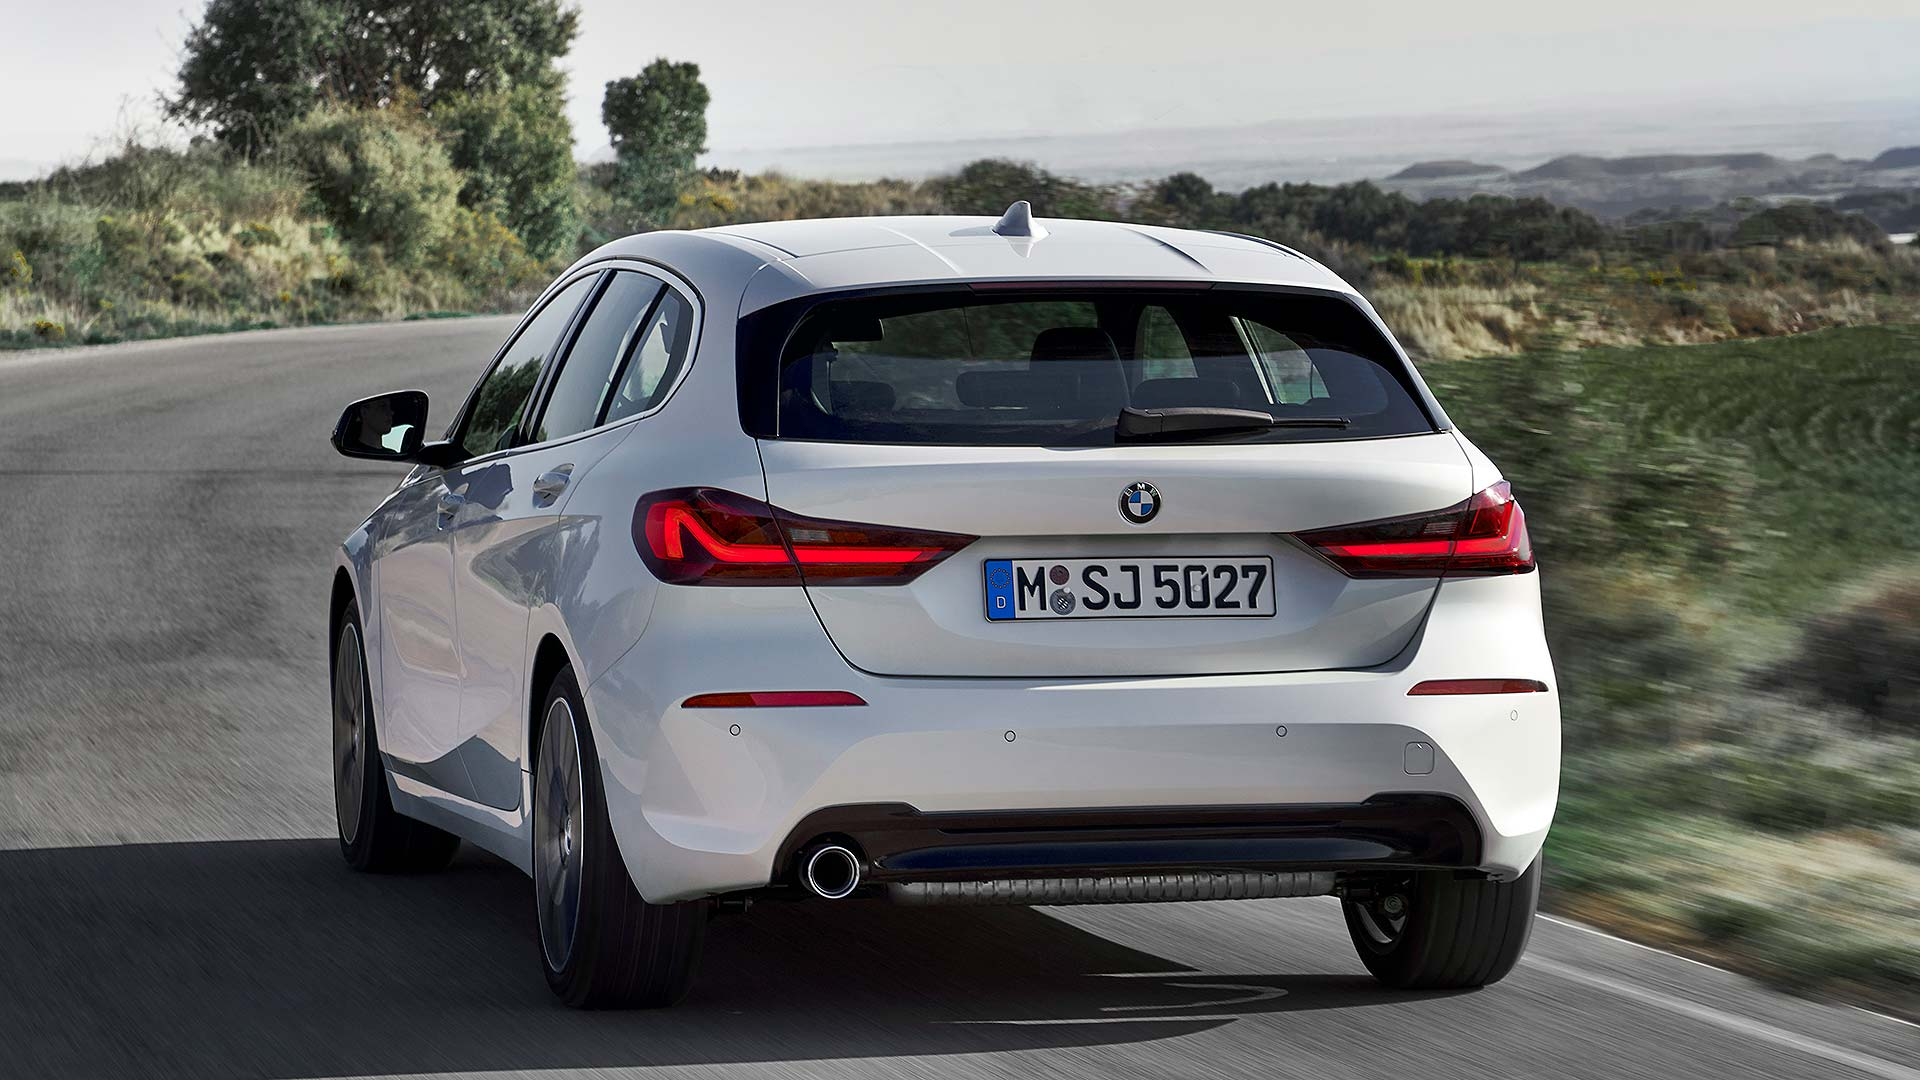 New Bmw 1 Series Revealed Full Details Of The 24 430 Premium Hatch Motoring Research